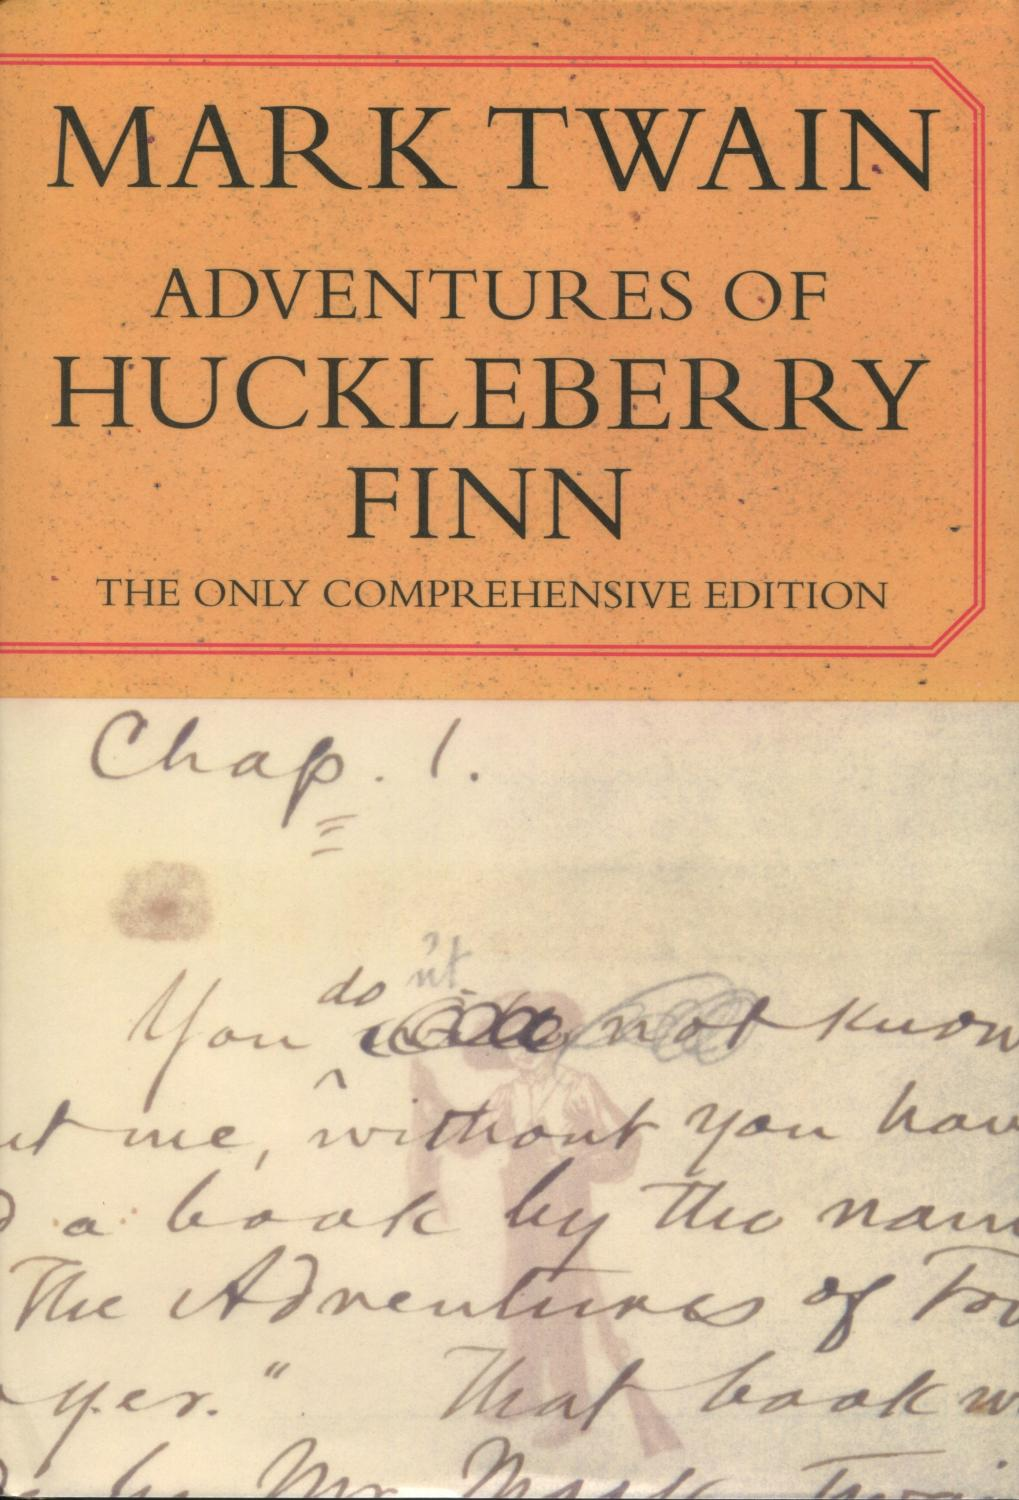 a literary analysis of huck finn in the adventures of huckleberry finn by mark twain Mark twain was not quite 50 when he published the adventures of huckleberry finn in february 1885, and in so doing, changed american literature.